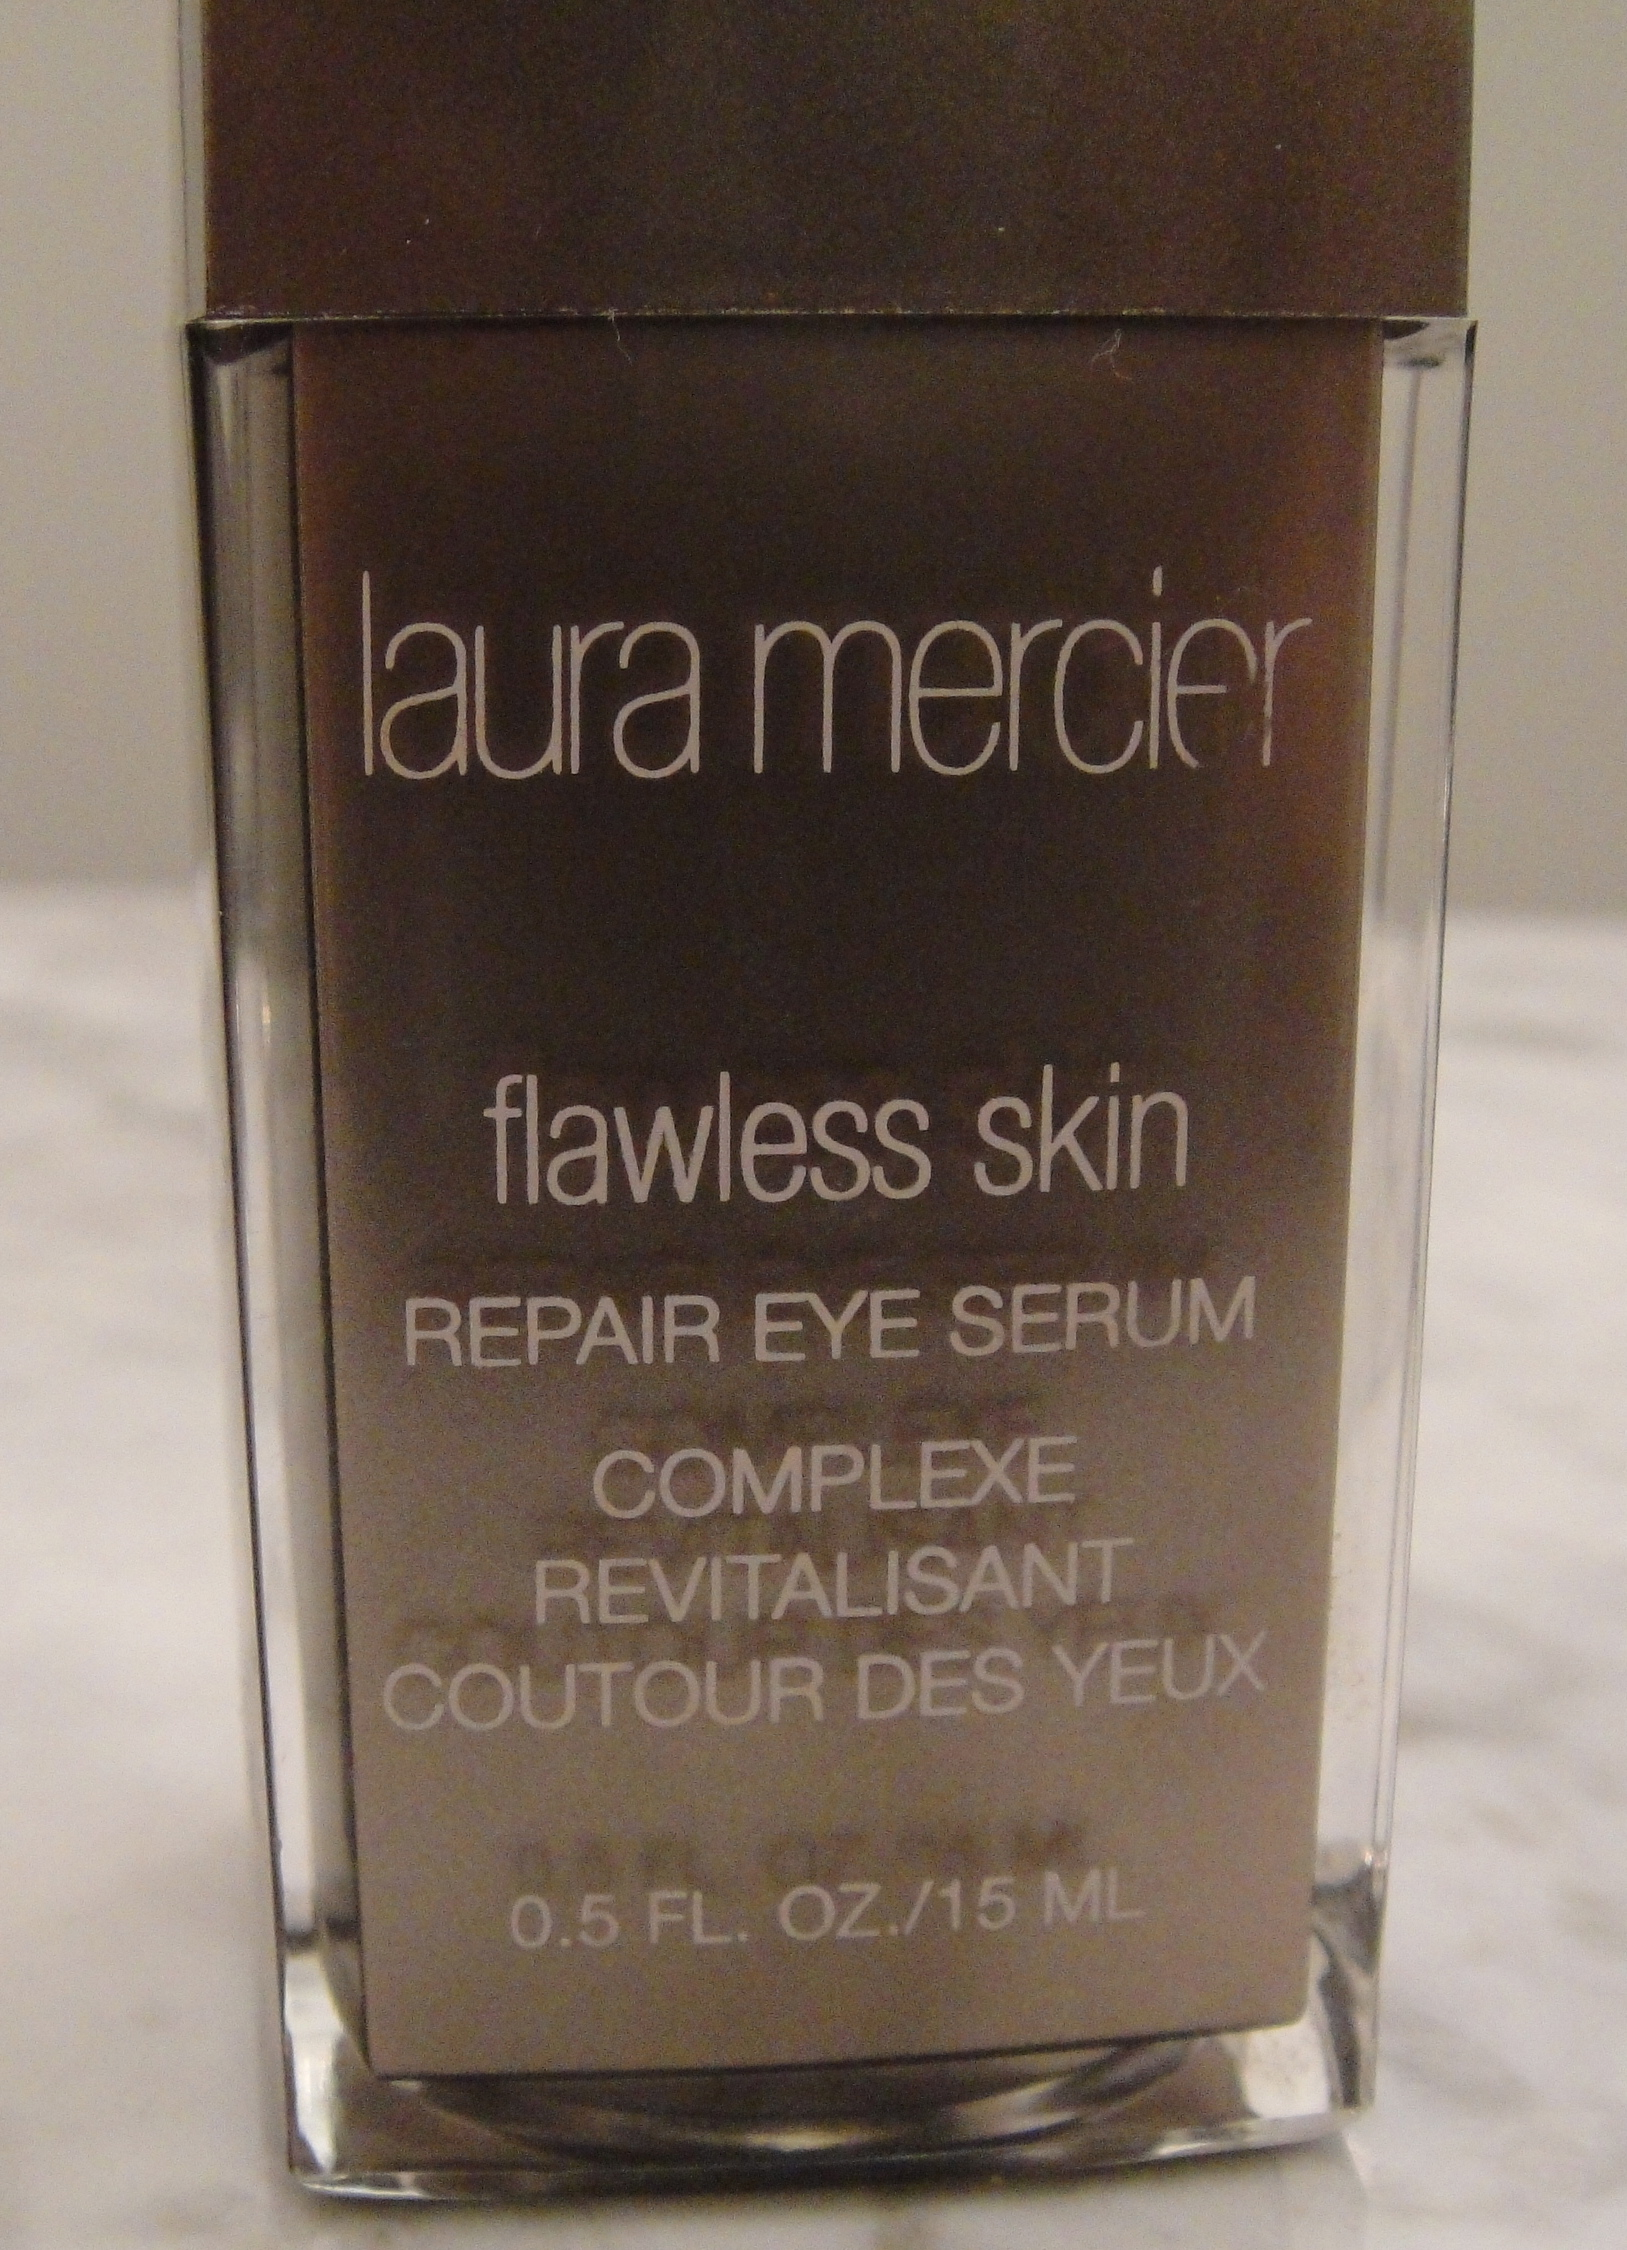 Laura Mercier, flawless skin repair eye serum